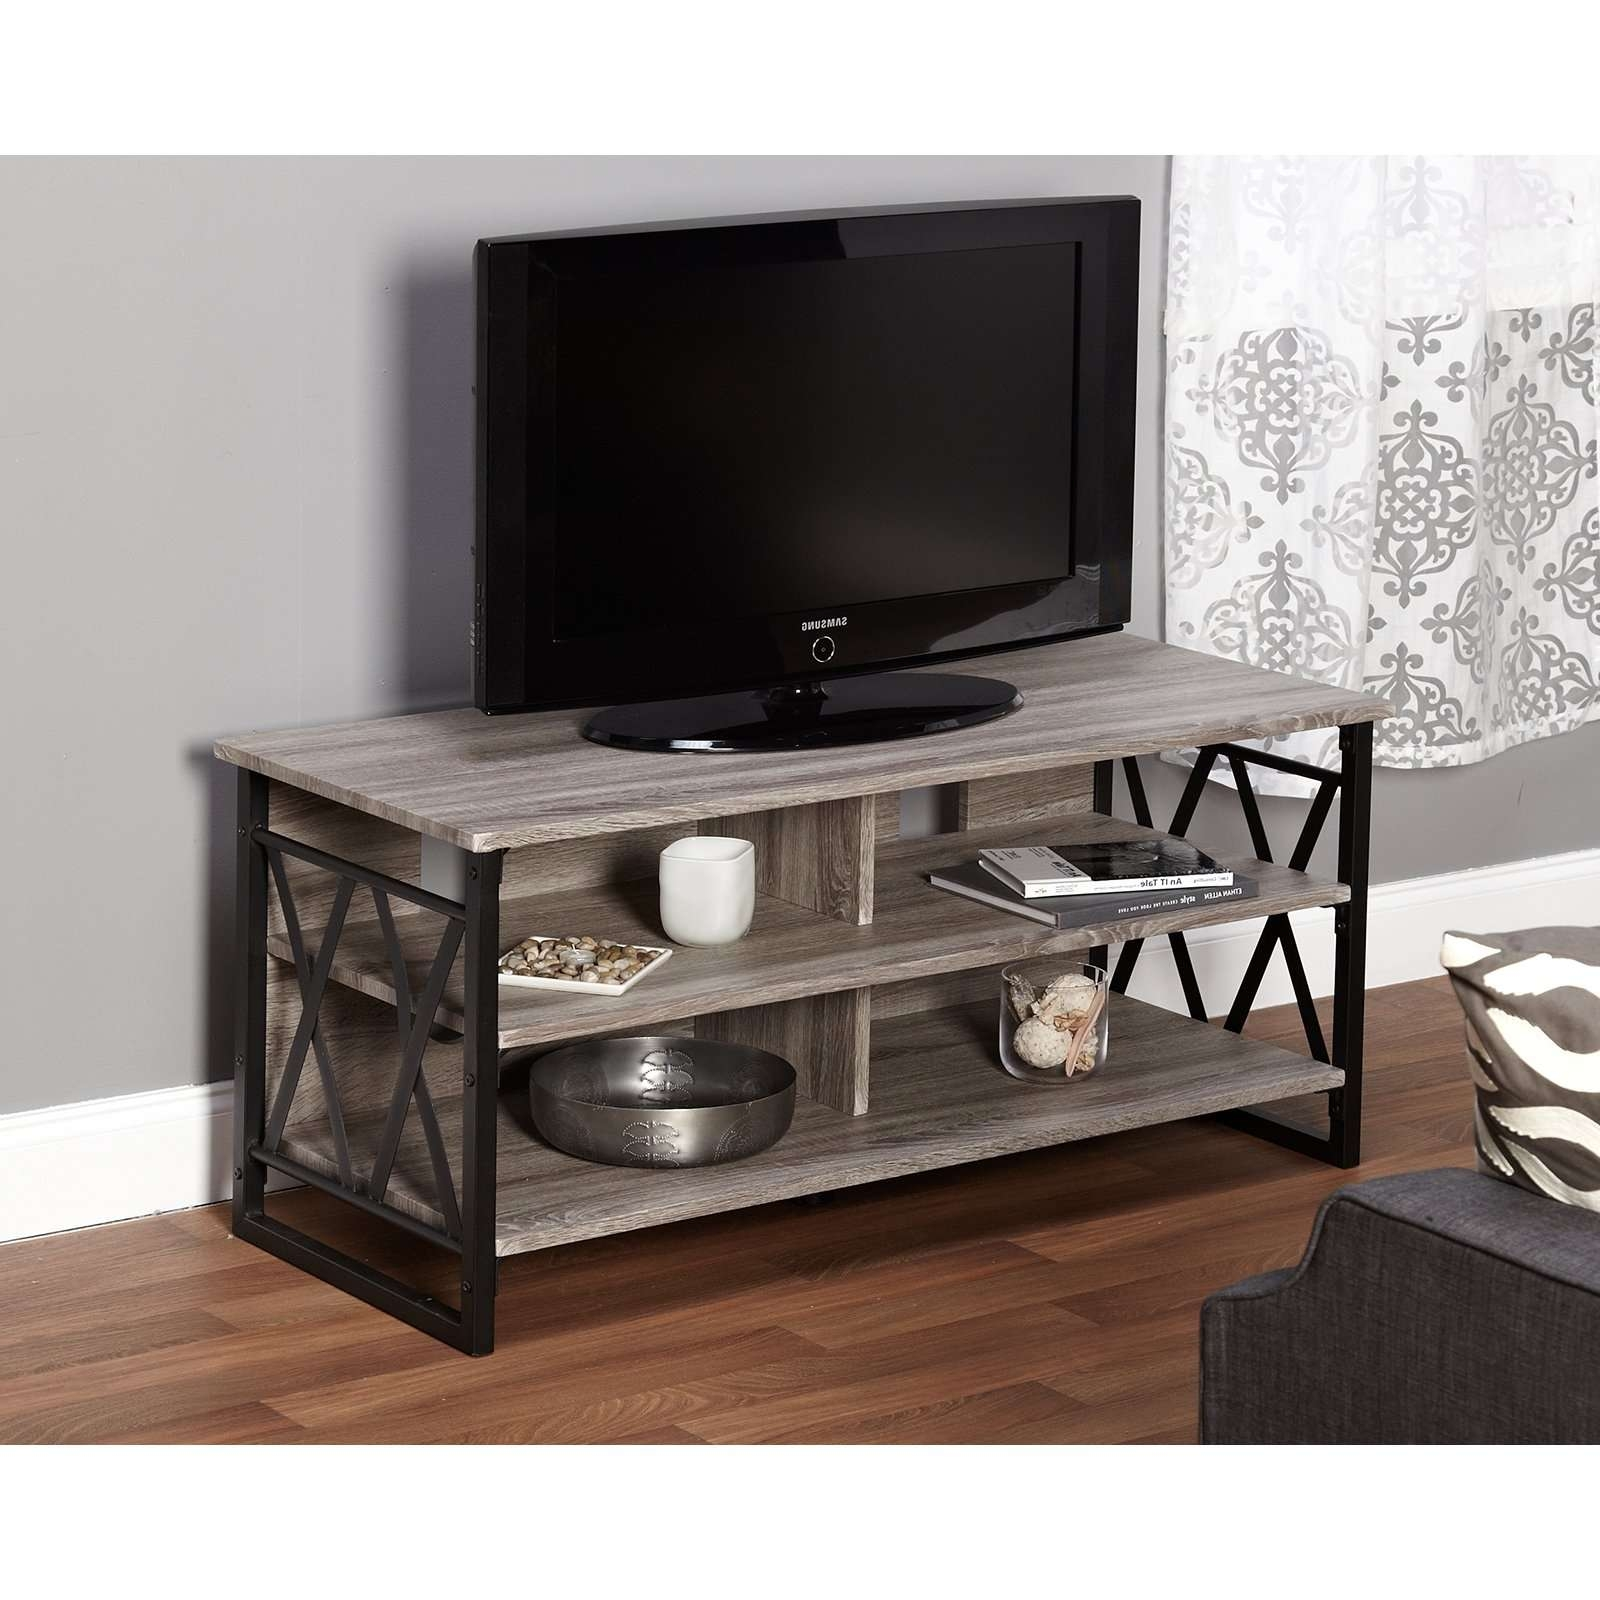 Belham Living Edison Reclaimed Wood Tv Stand | Hayneedle With Regard To Wood Tv Stands (View 14 of 15)